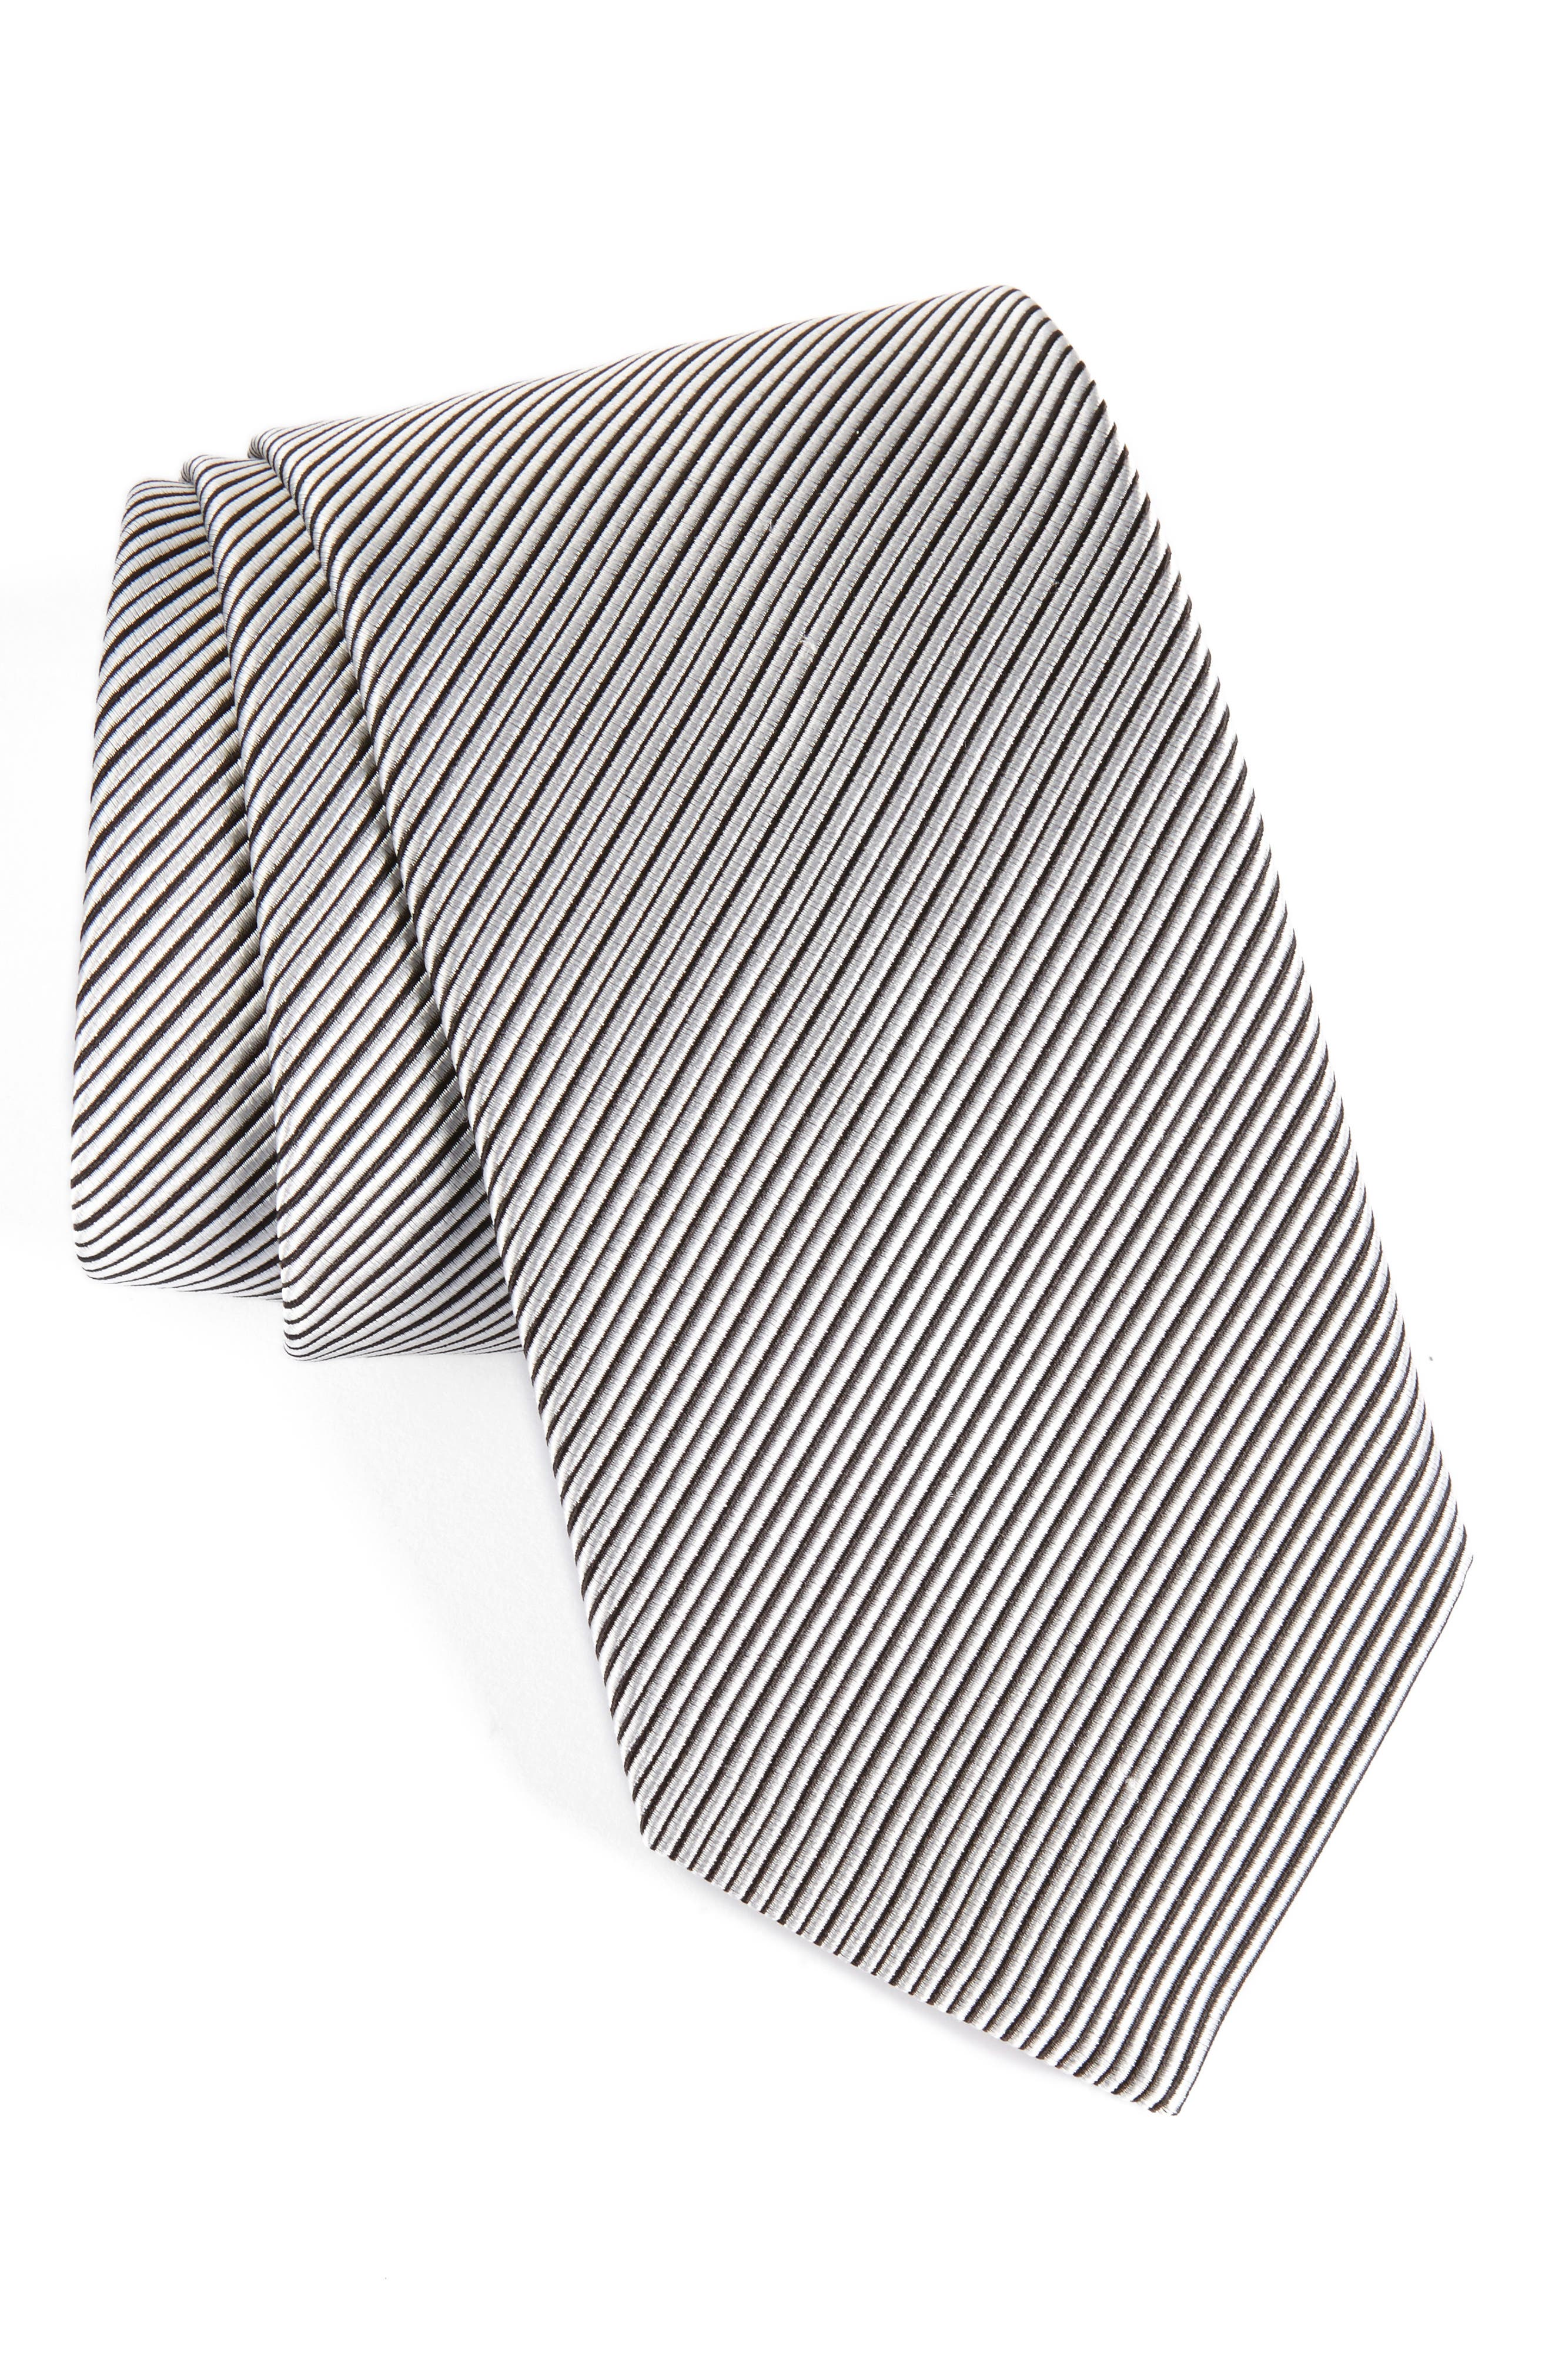 Stripe Silk Tie,                         Main,                         color, Black/ White